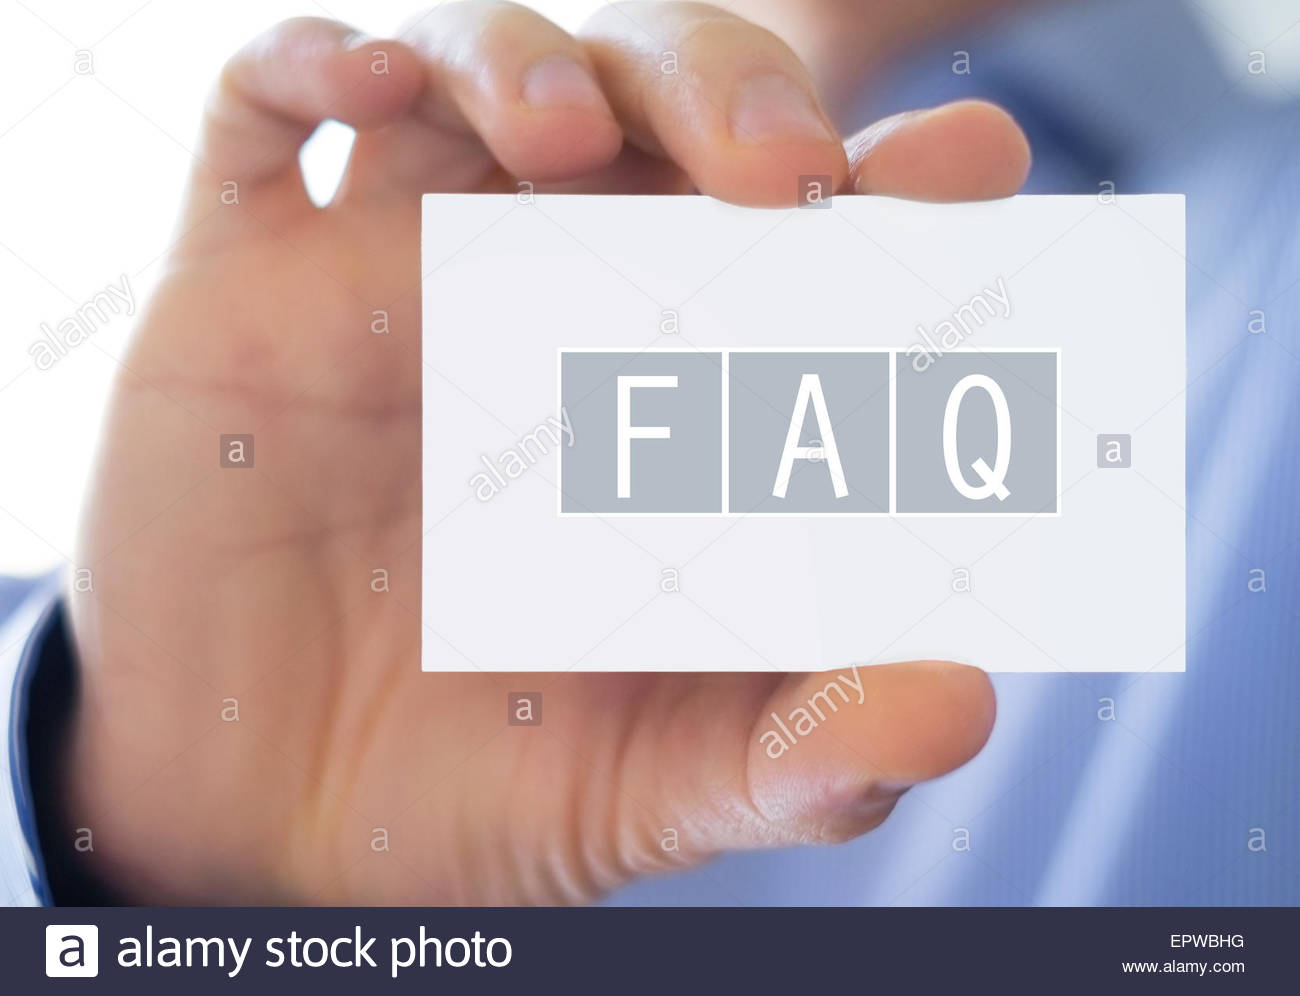 FAQ - Frequently Asked Questions - Stock Image